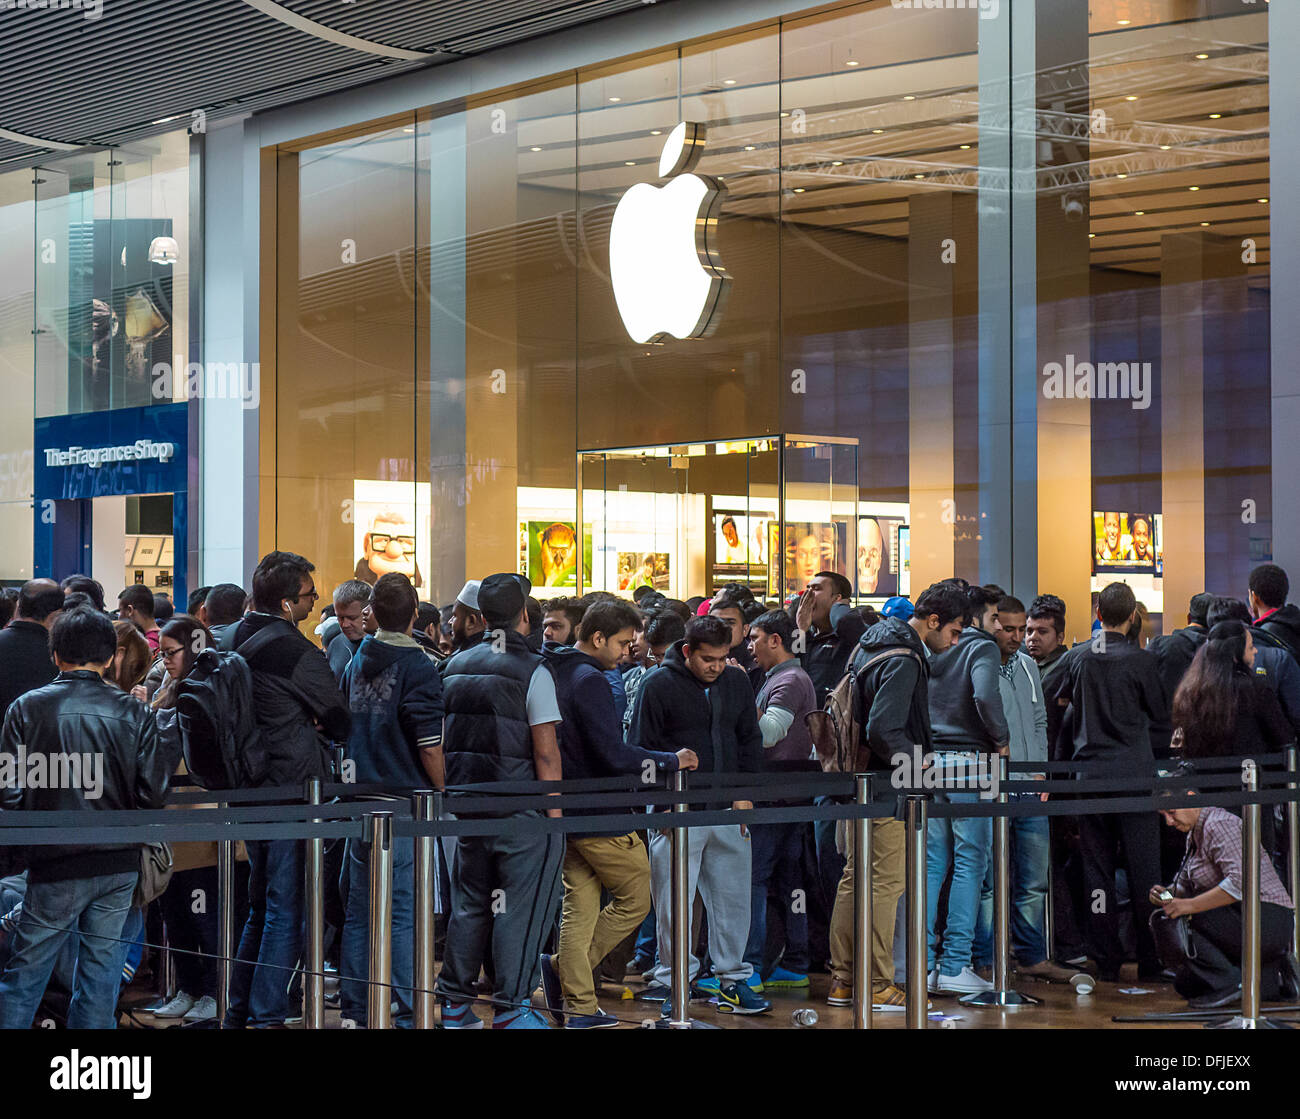 Apple Shop Queue for new Product Westfield Shopping Centre Stock Photo